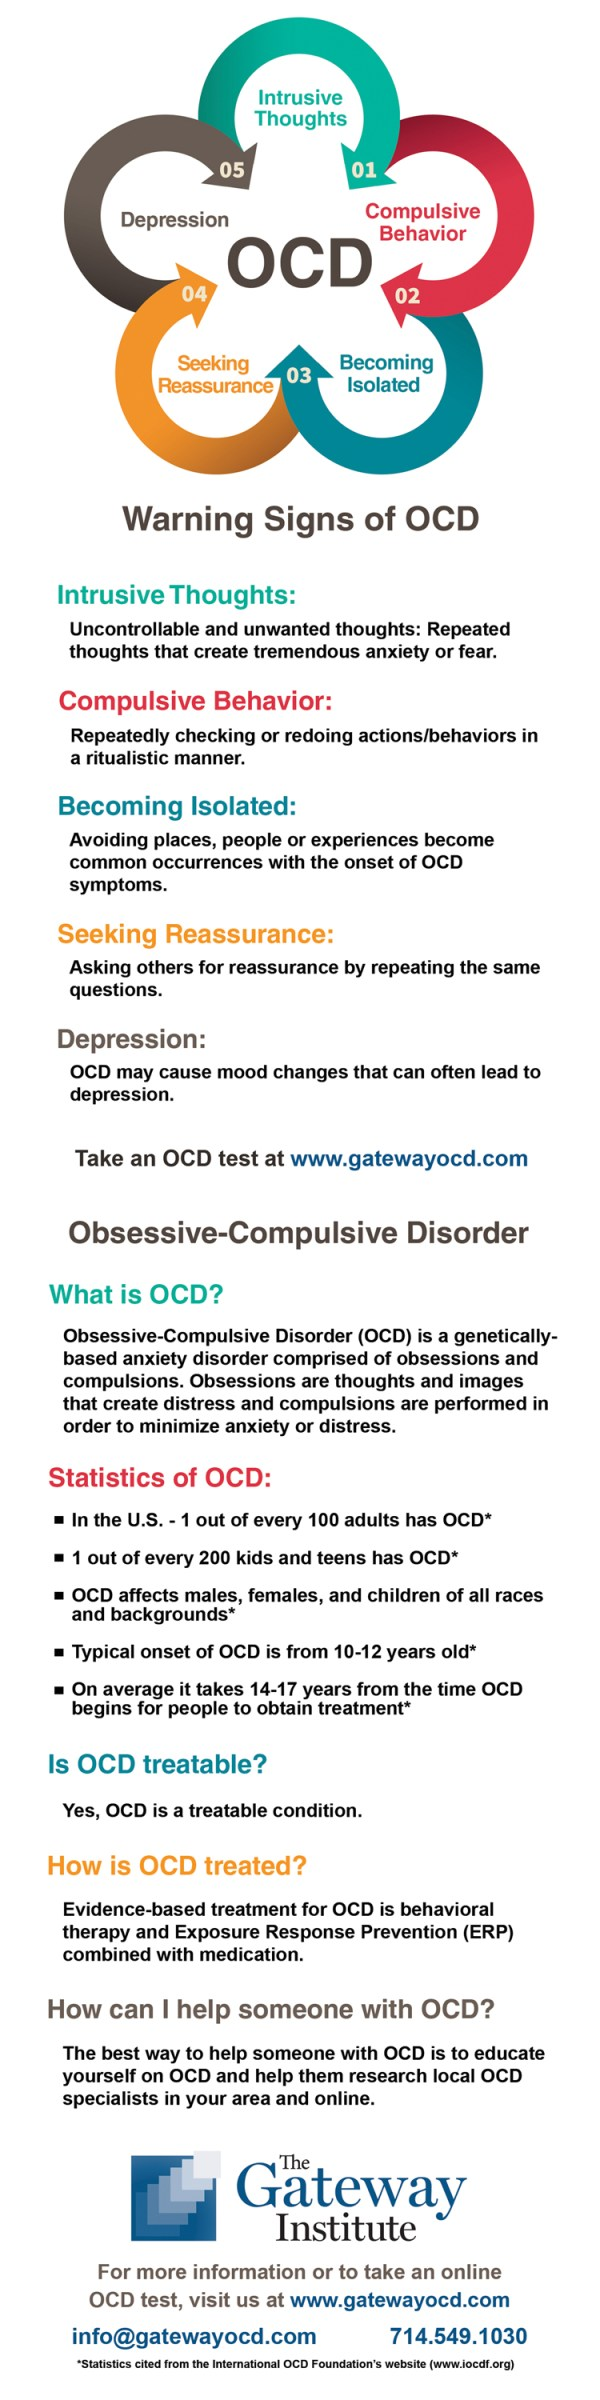 5_Warning_Signs_of_OCD_Infographic